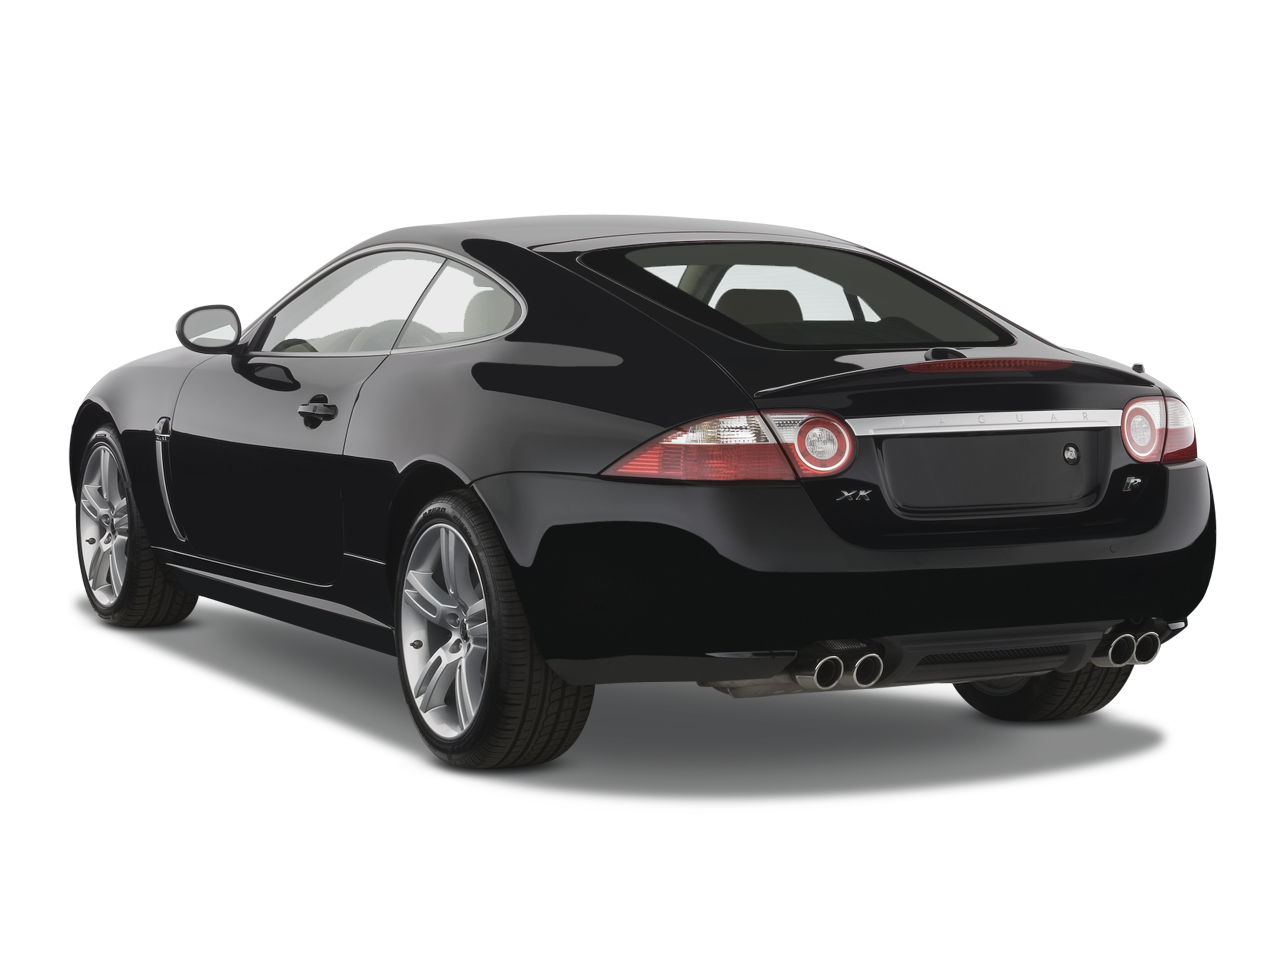 2007 jaguar xkr coupe and convertible new and future cars trucks and suvs automobile magazine. Black Bedroom Furniture Sets. Home Design Ideas